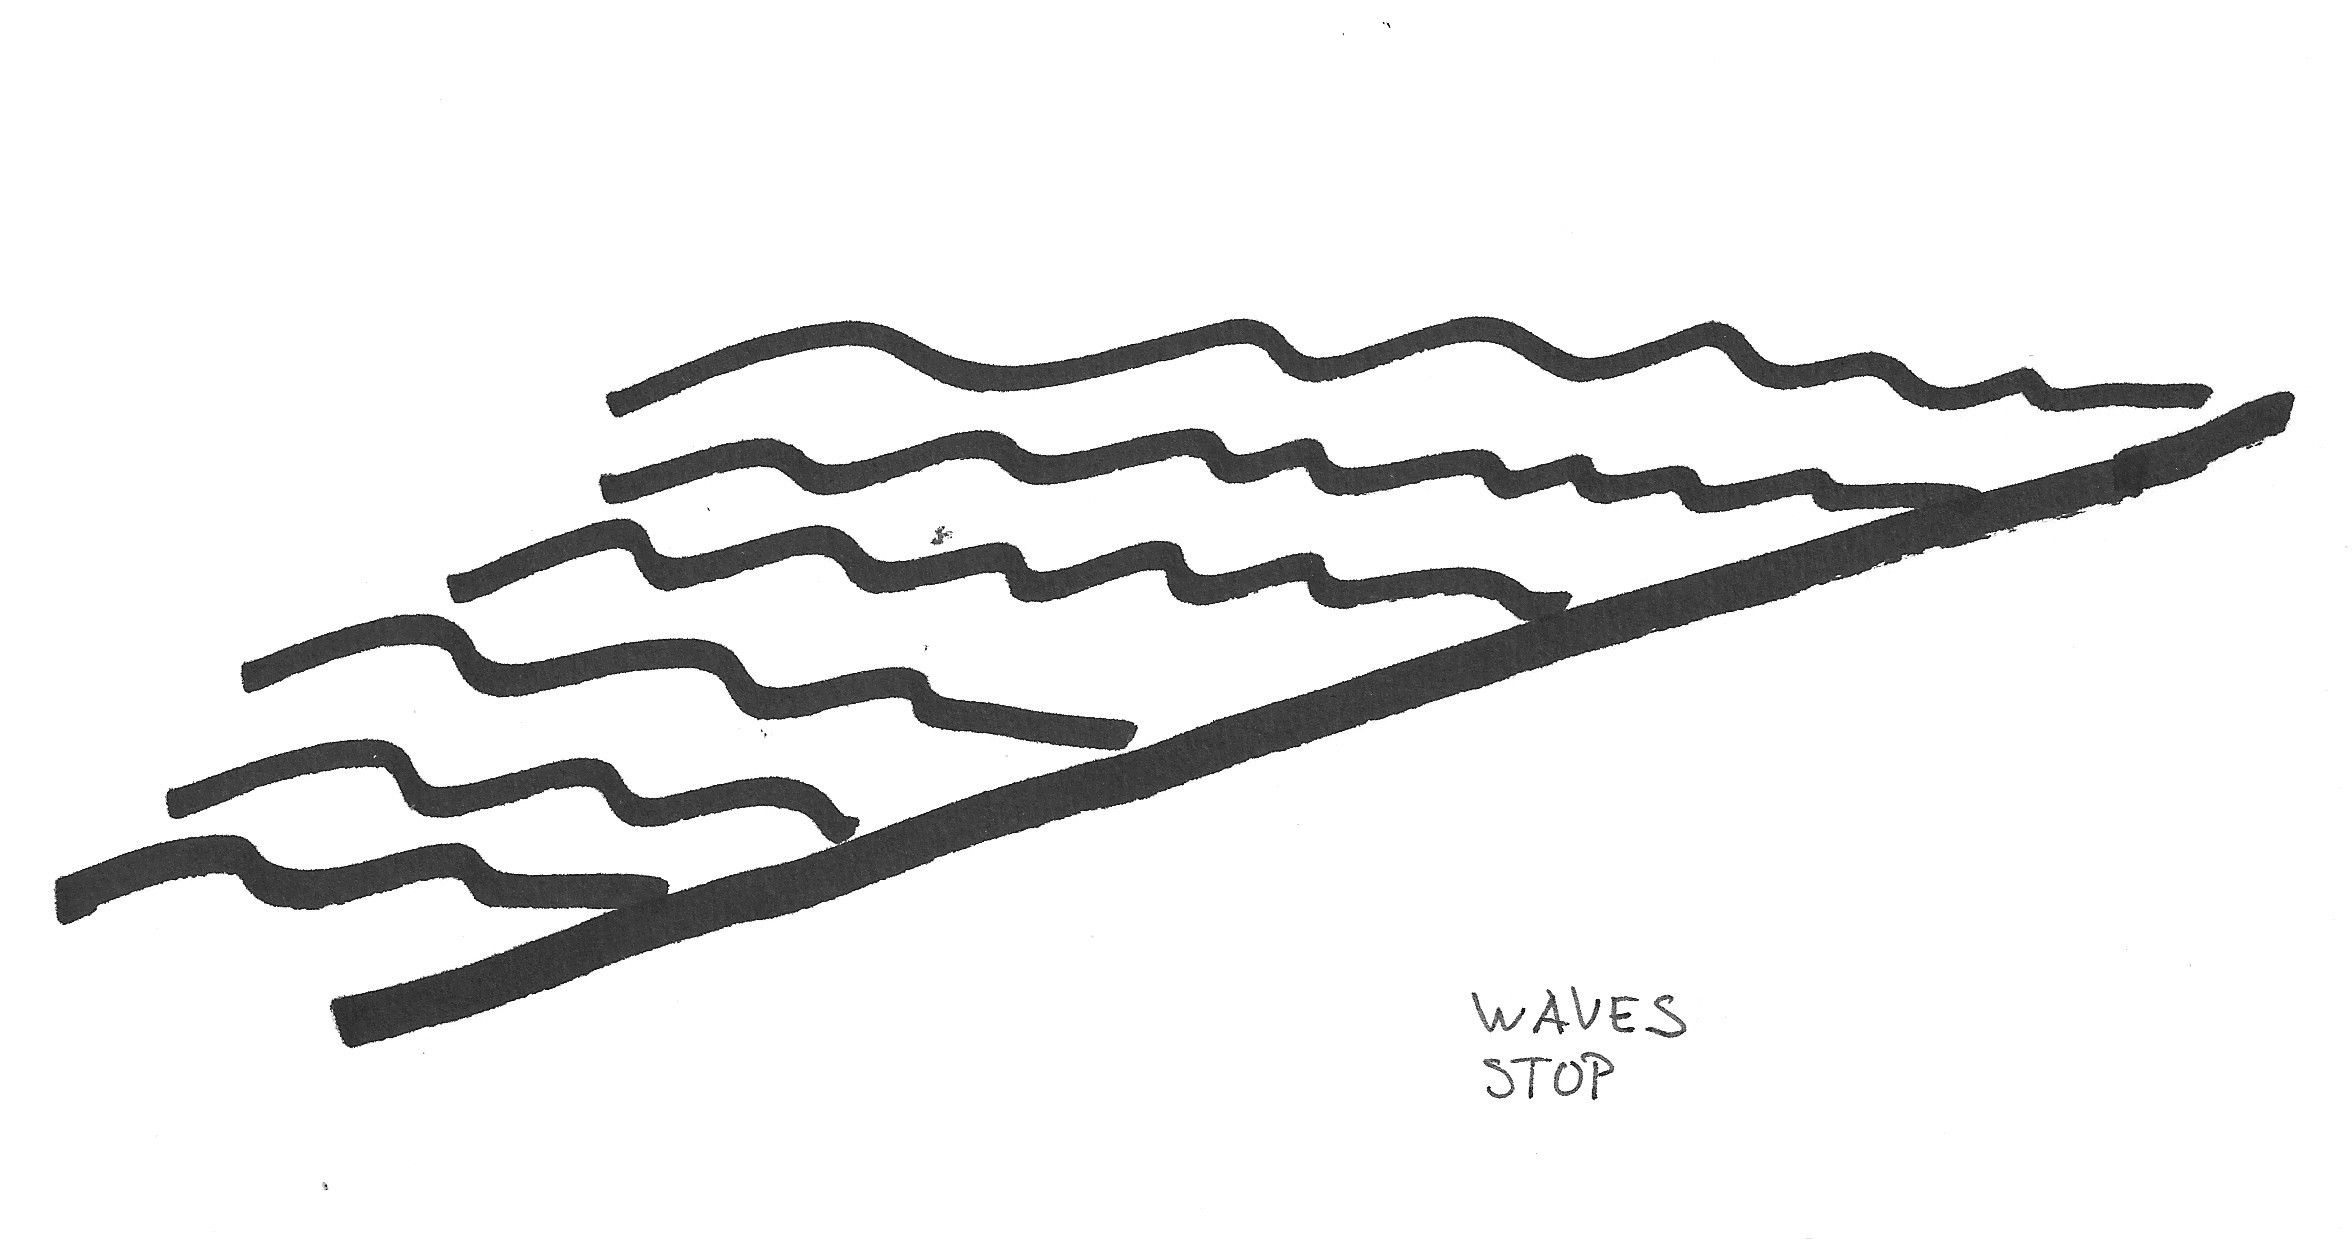 Waves black and white waves clip art black and white info.